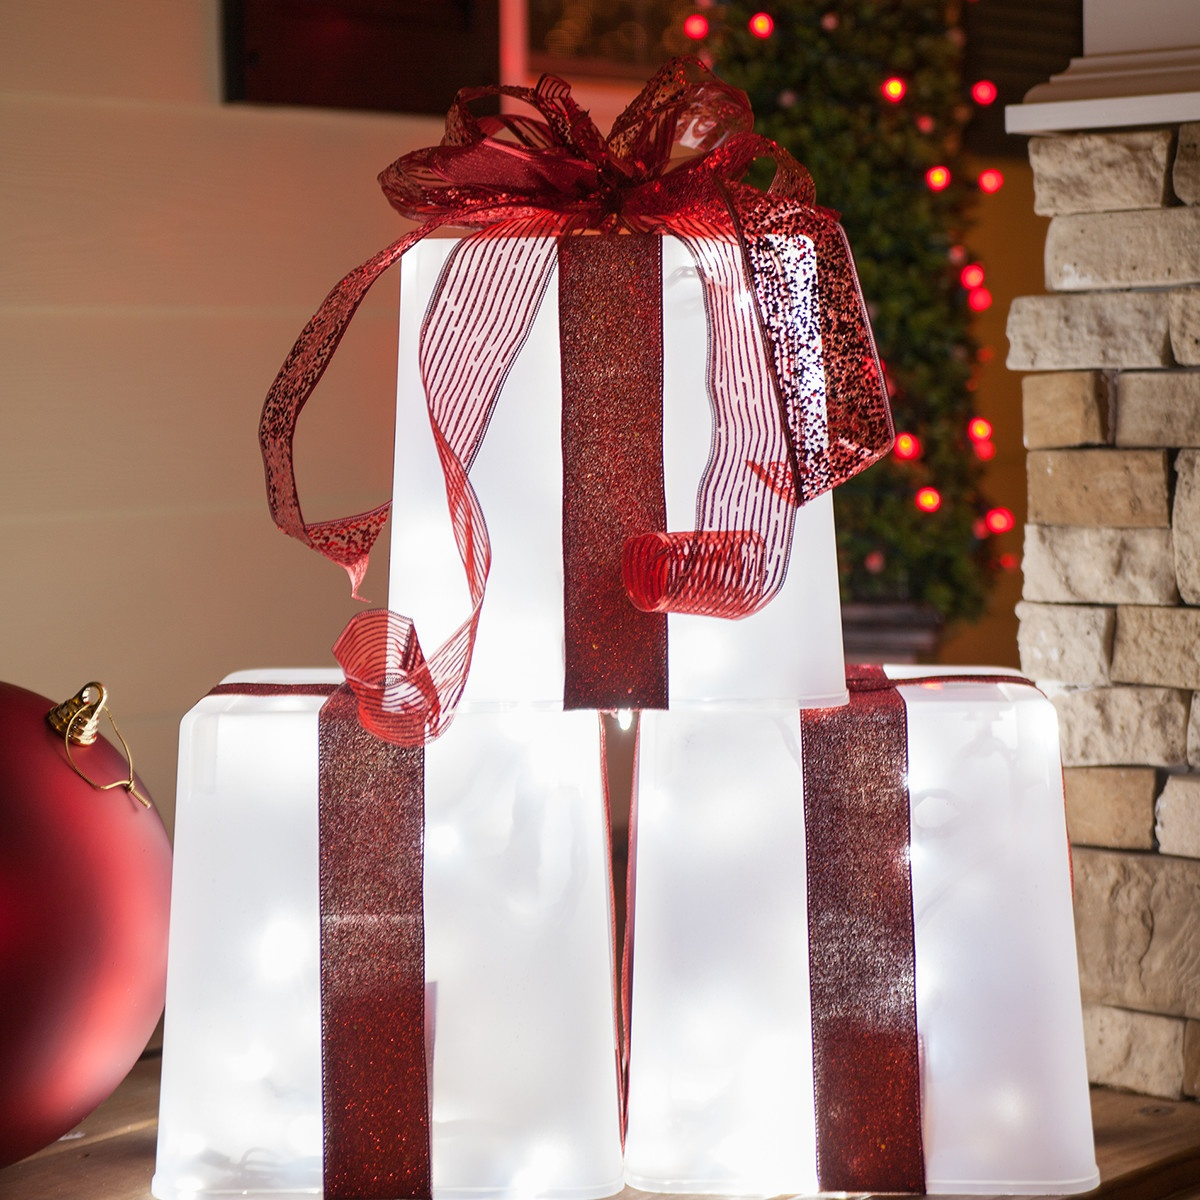 create diy lighted gift boxes using plastic containers string lights and christmas ribbon